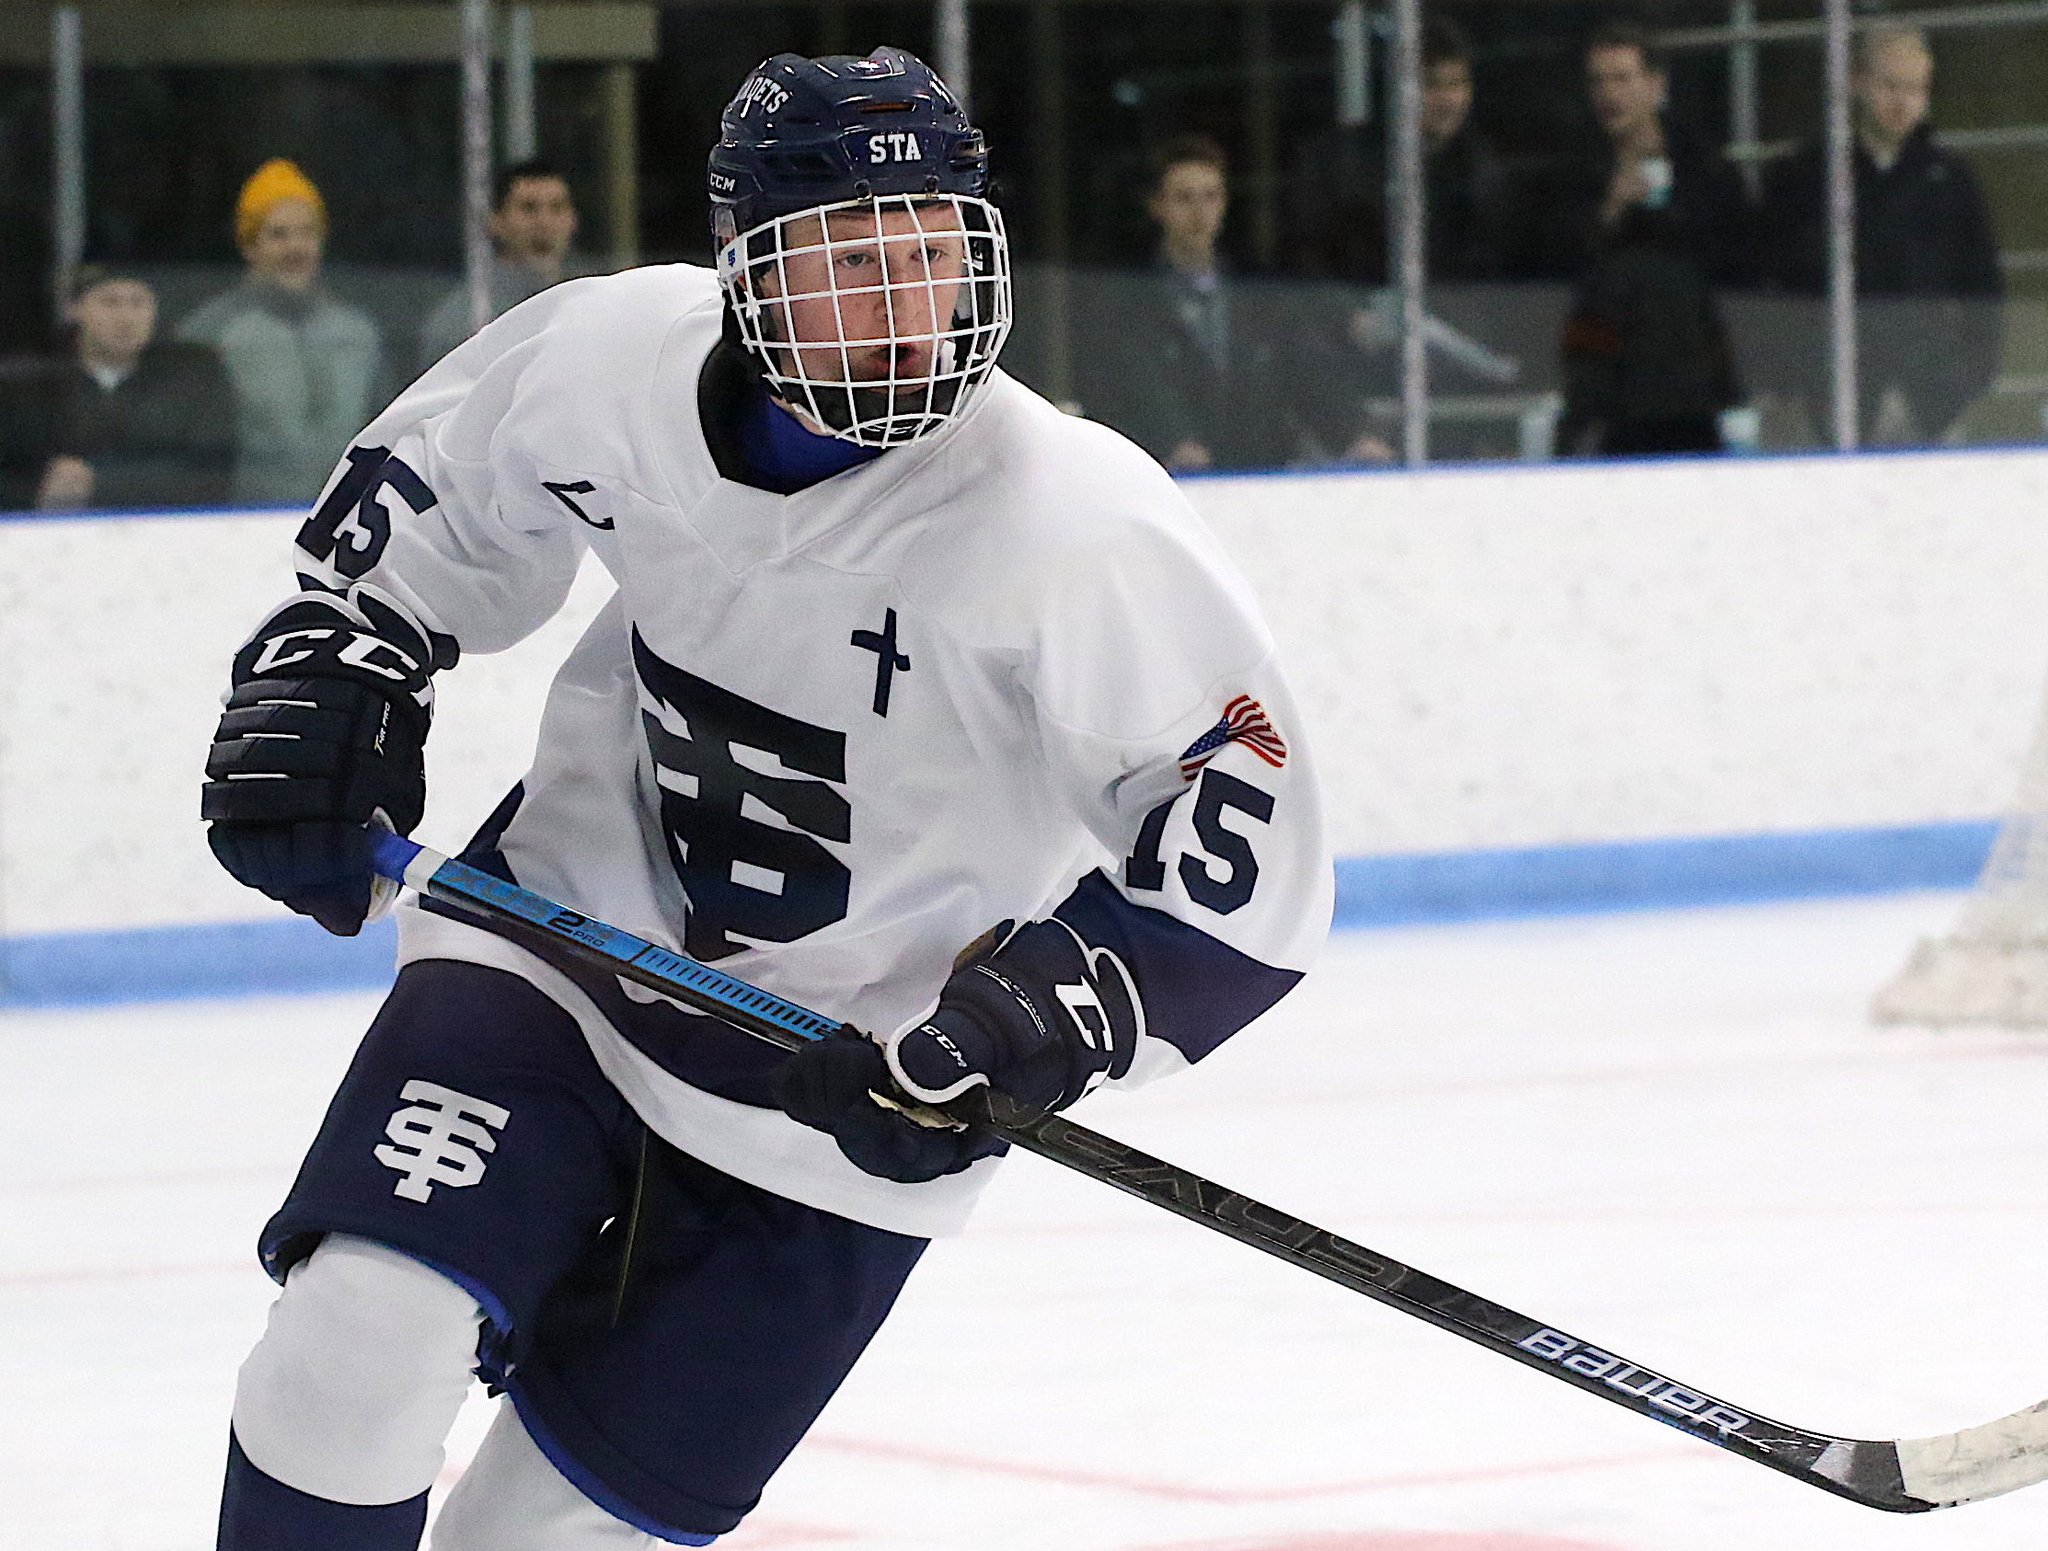 Congrats to Jackson Hallum ('02, St. Thomas Academy) on his commitment to Michigan today. The Wolverines will get one of the fastest players in MN HS hockey whose skill level will give Big Ten defenders  trouble. https://t.co/98Q4ojOJCT